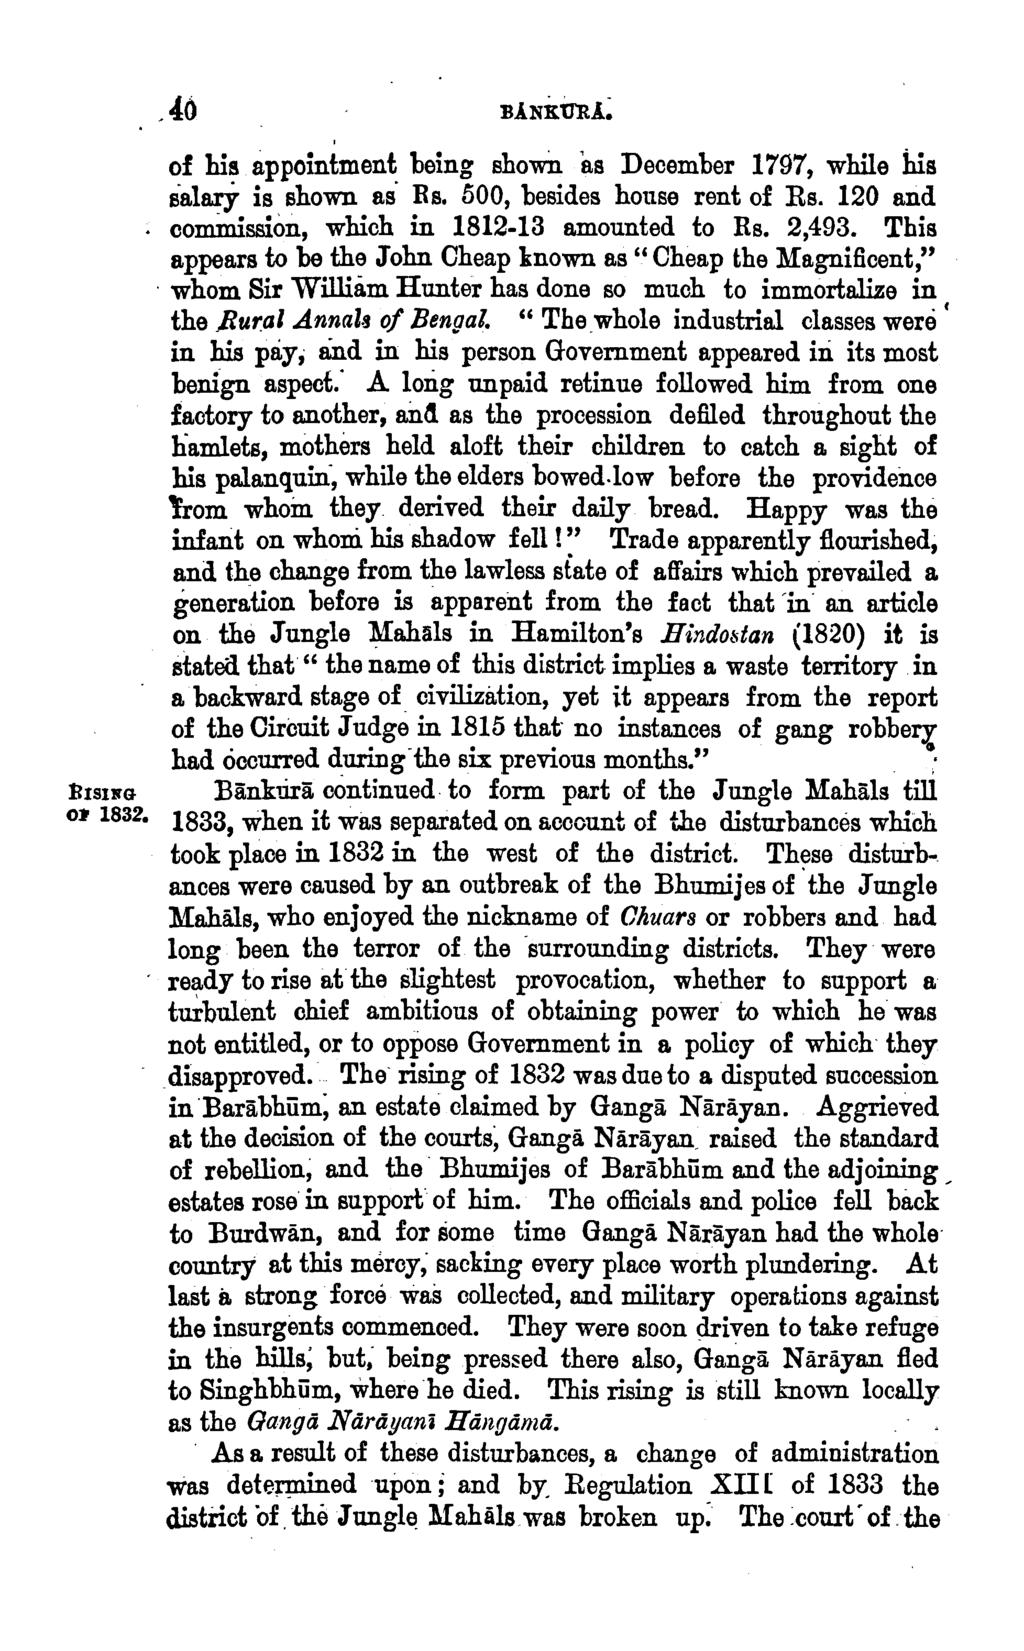 ~ISING Ol' 1832. ' of his appointment being shown as December 1797, while his salary is shown as Rs. 500, besides house rent of Rs. 120 and com.inission, which in 1812-13 amounted to Rs. 2,493.